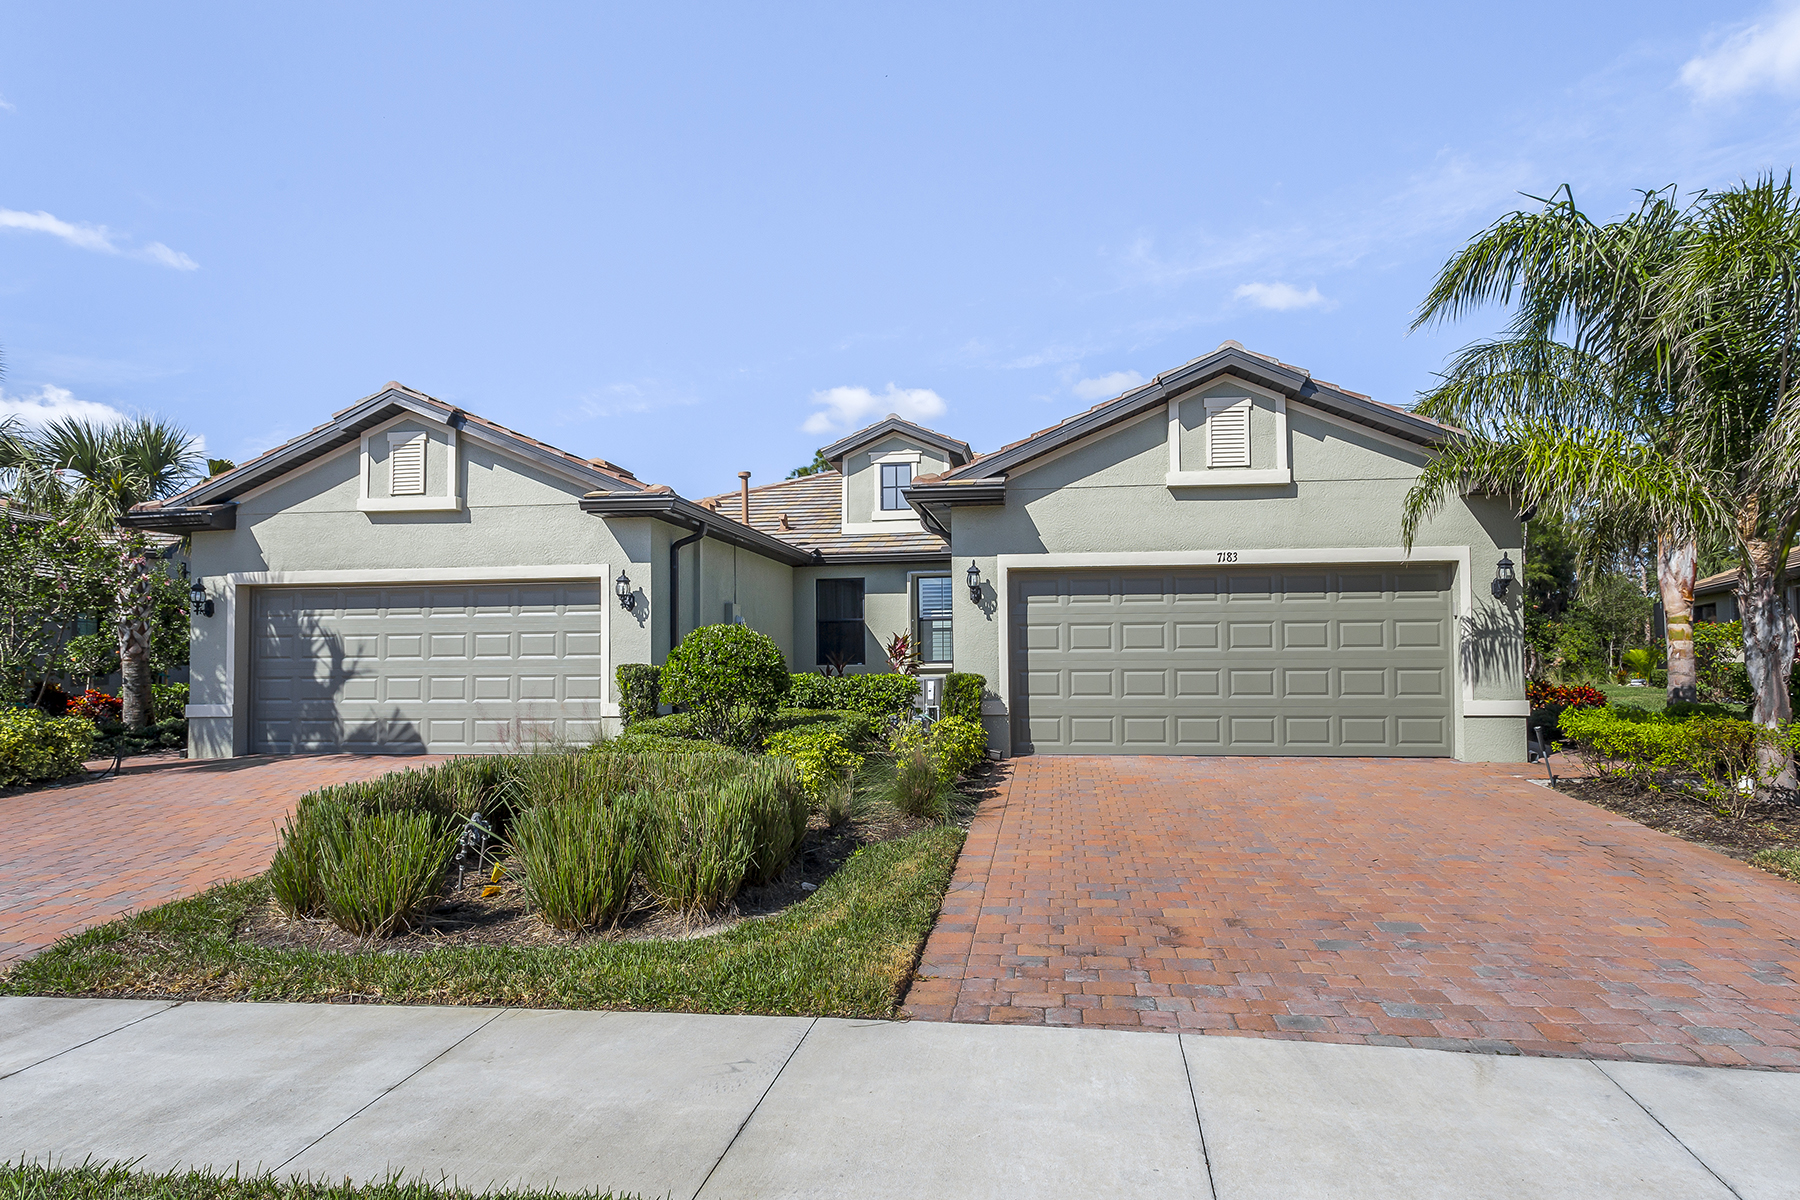 Townhouse for Sale at WINDING CYPRESS 7183 Live Oak Dr, Naples, Florida 34114 United States